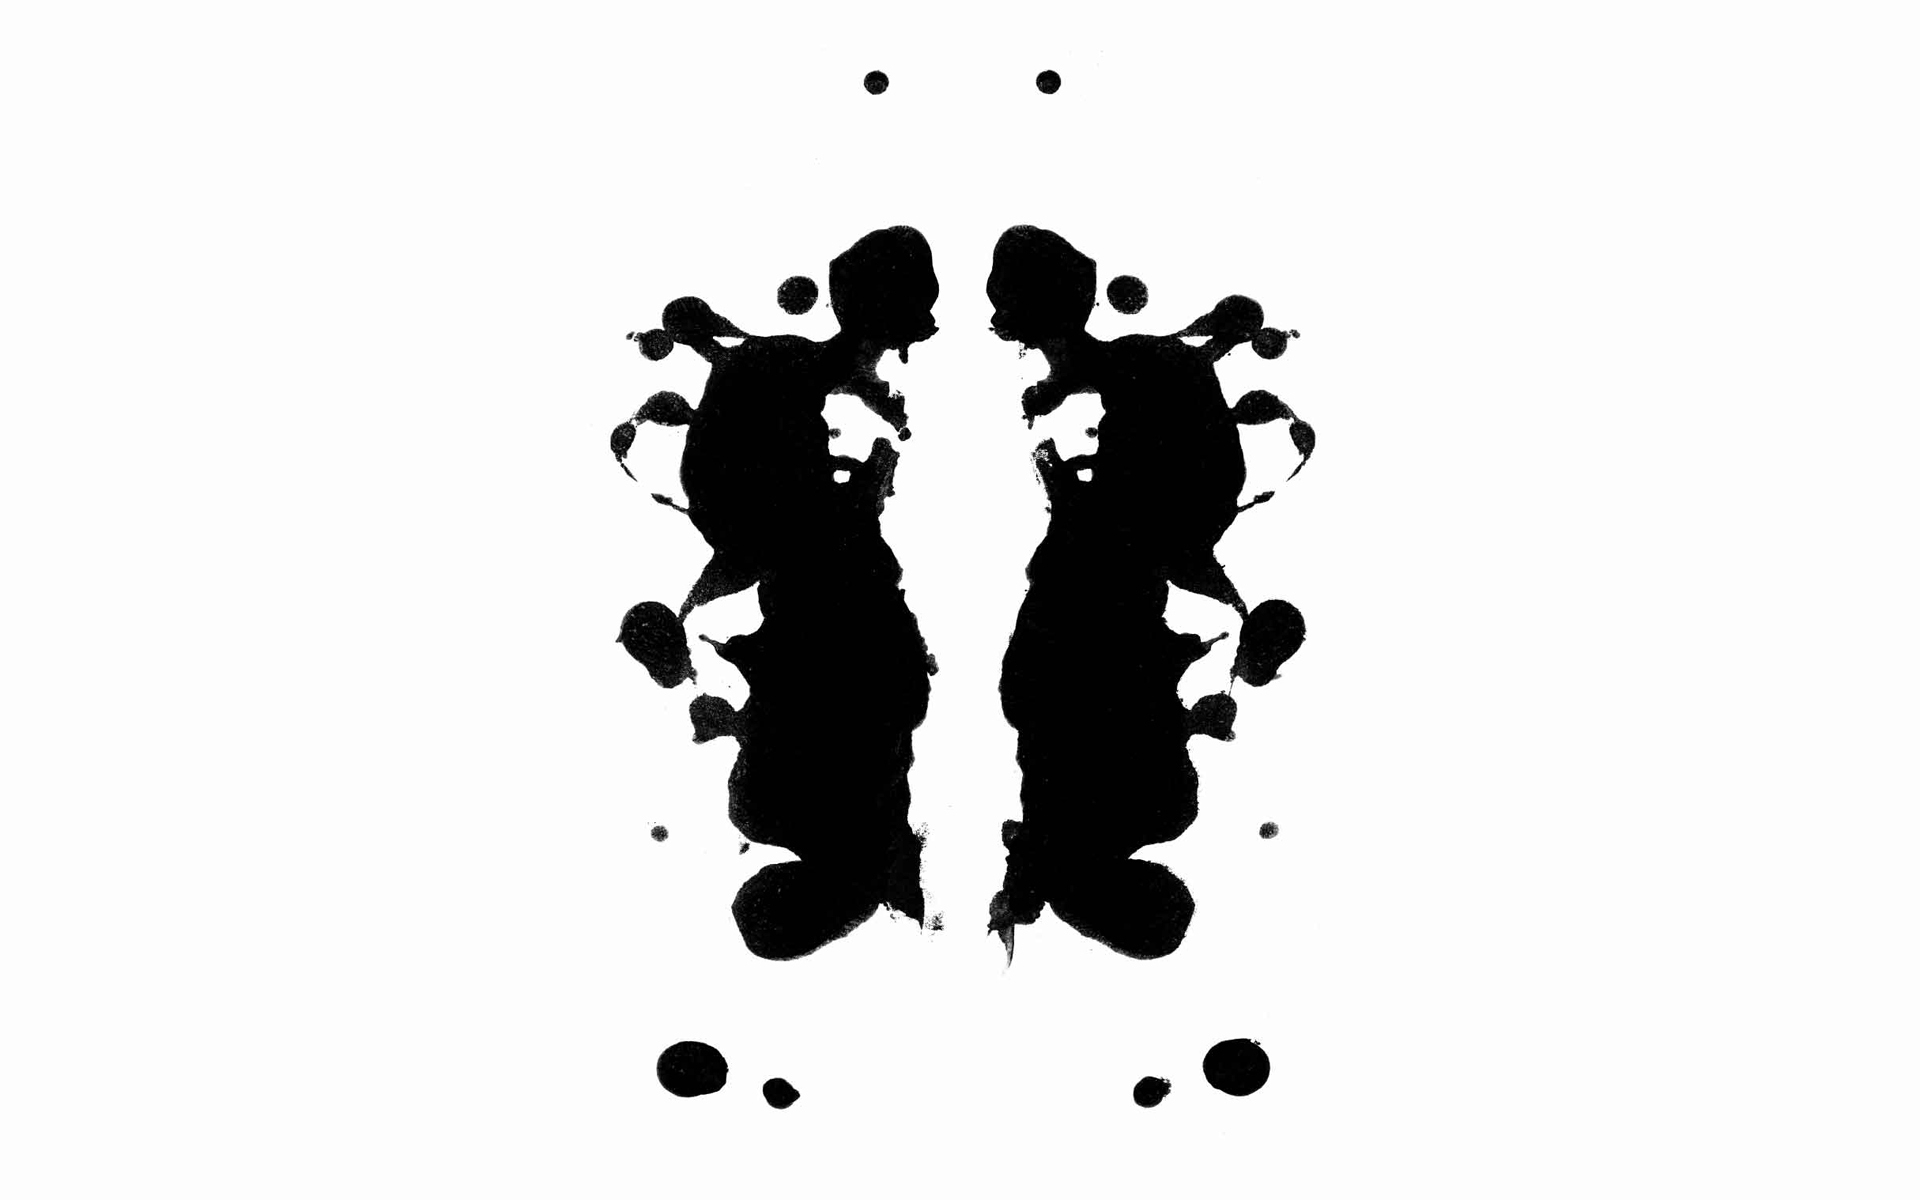 rorschach test wallpaper hd